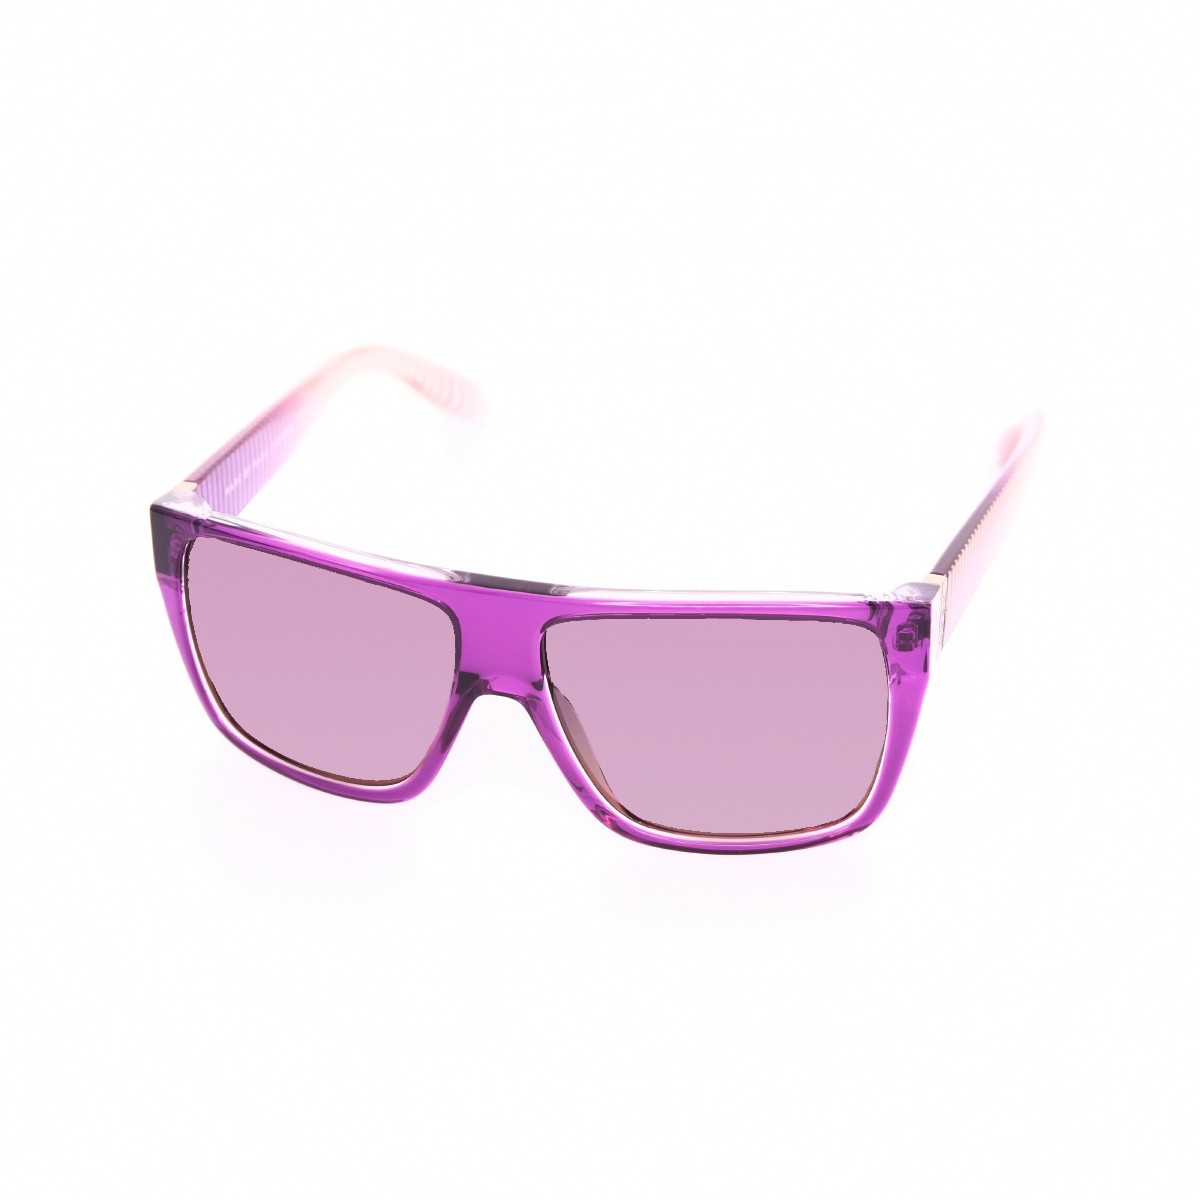 Marc Jacobs 287/S OFD, 80,00 €, Occhiali Marc Jacobs Viola a forma Rettangolare